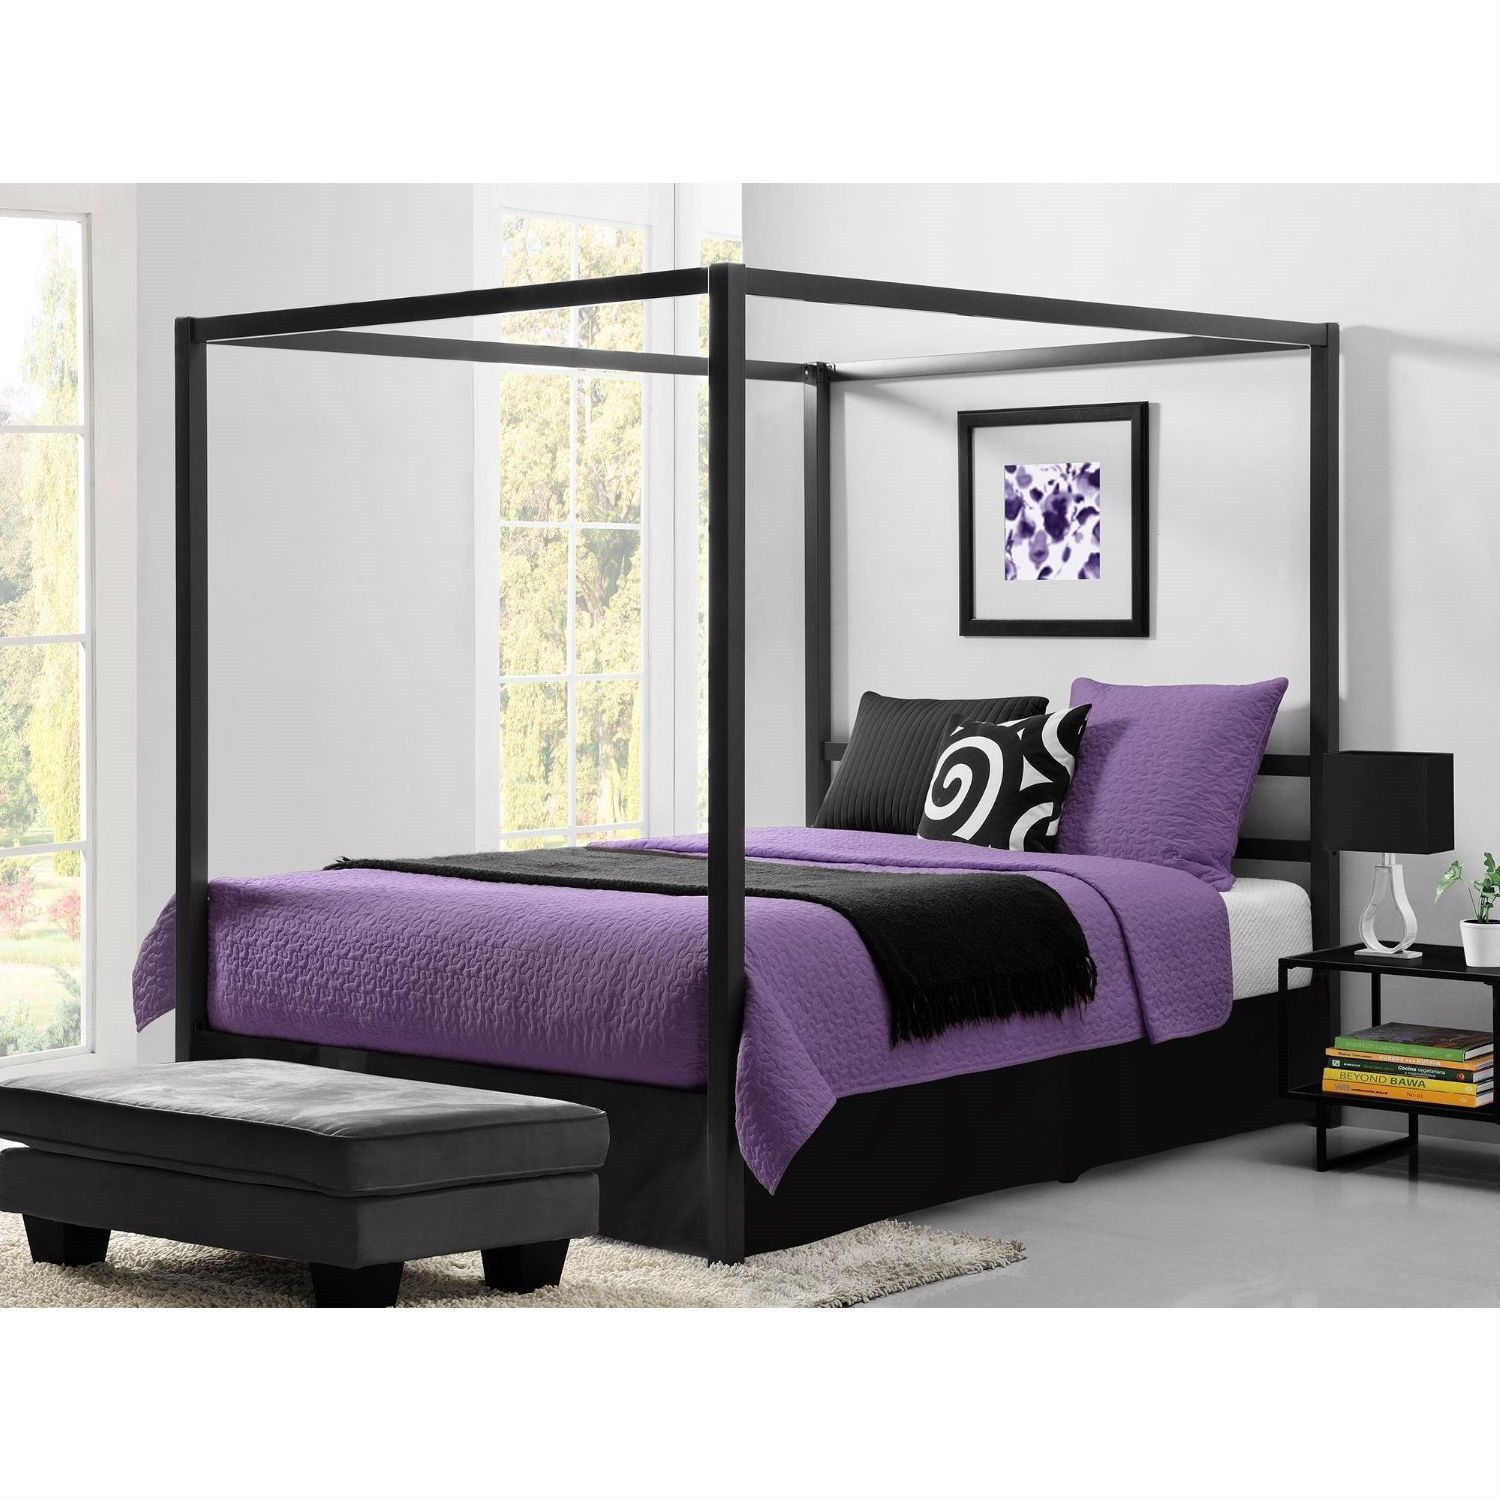 Queen Size Modern Canopy Bed in Sturdy Grey Metal Queen